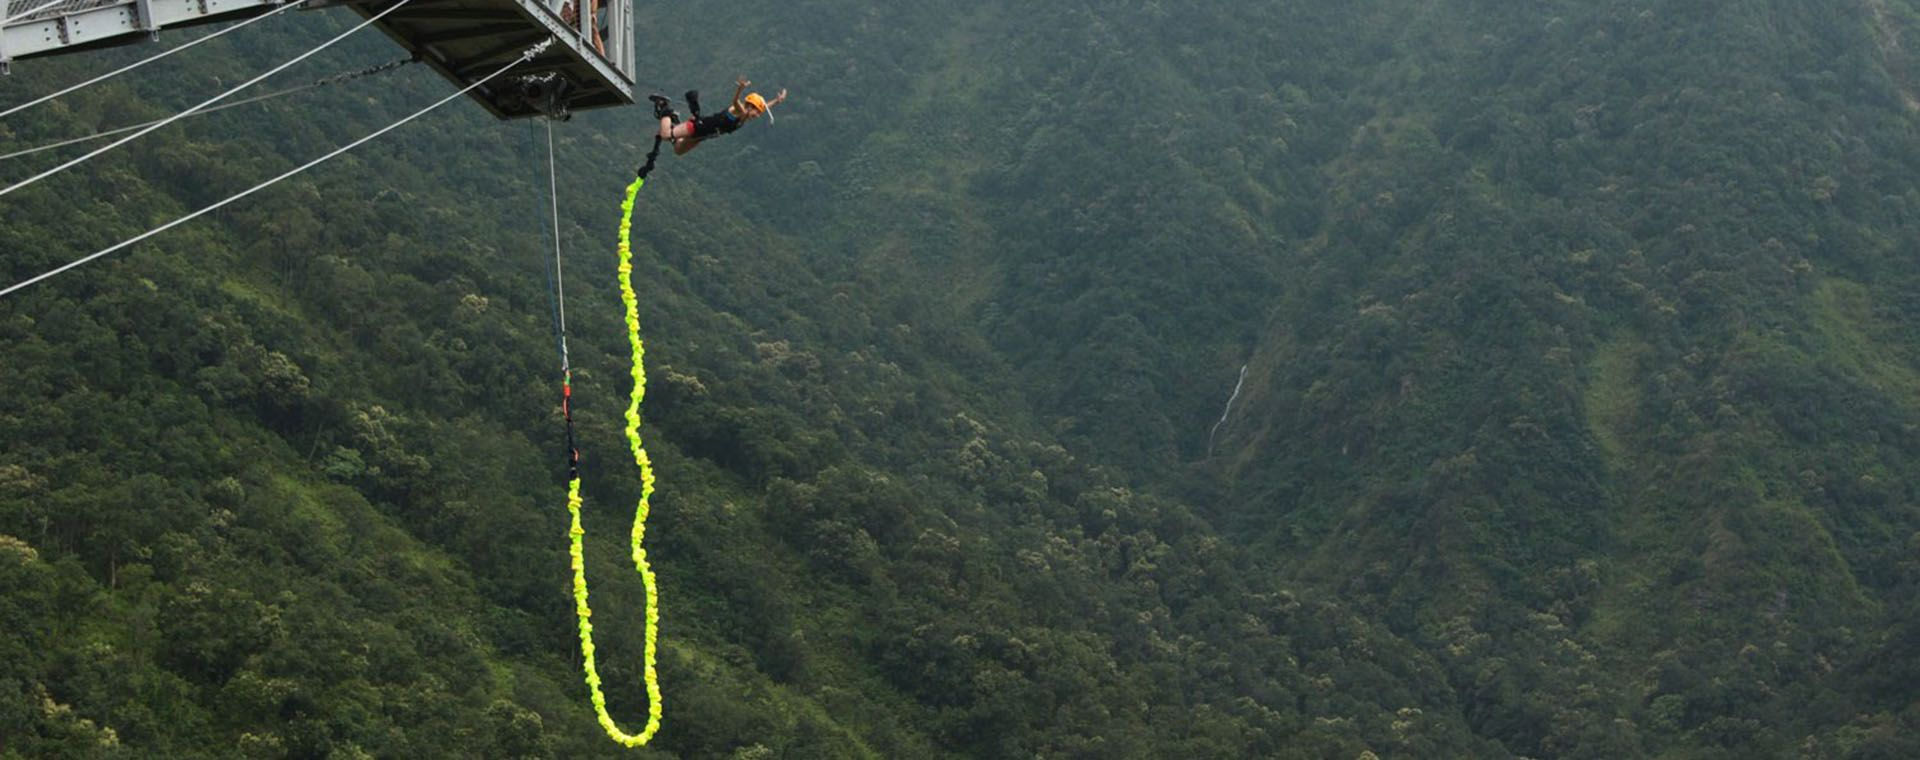 Bungee Jump Pokhara Choose Your Favorite Adventure And Explore Bungee Jumping Adventure Paragliding